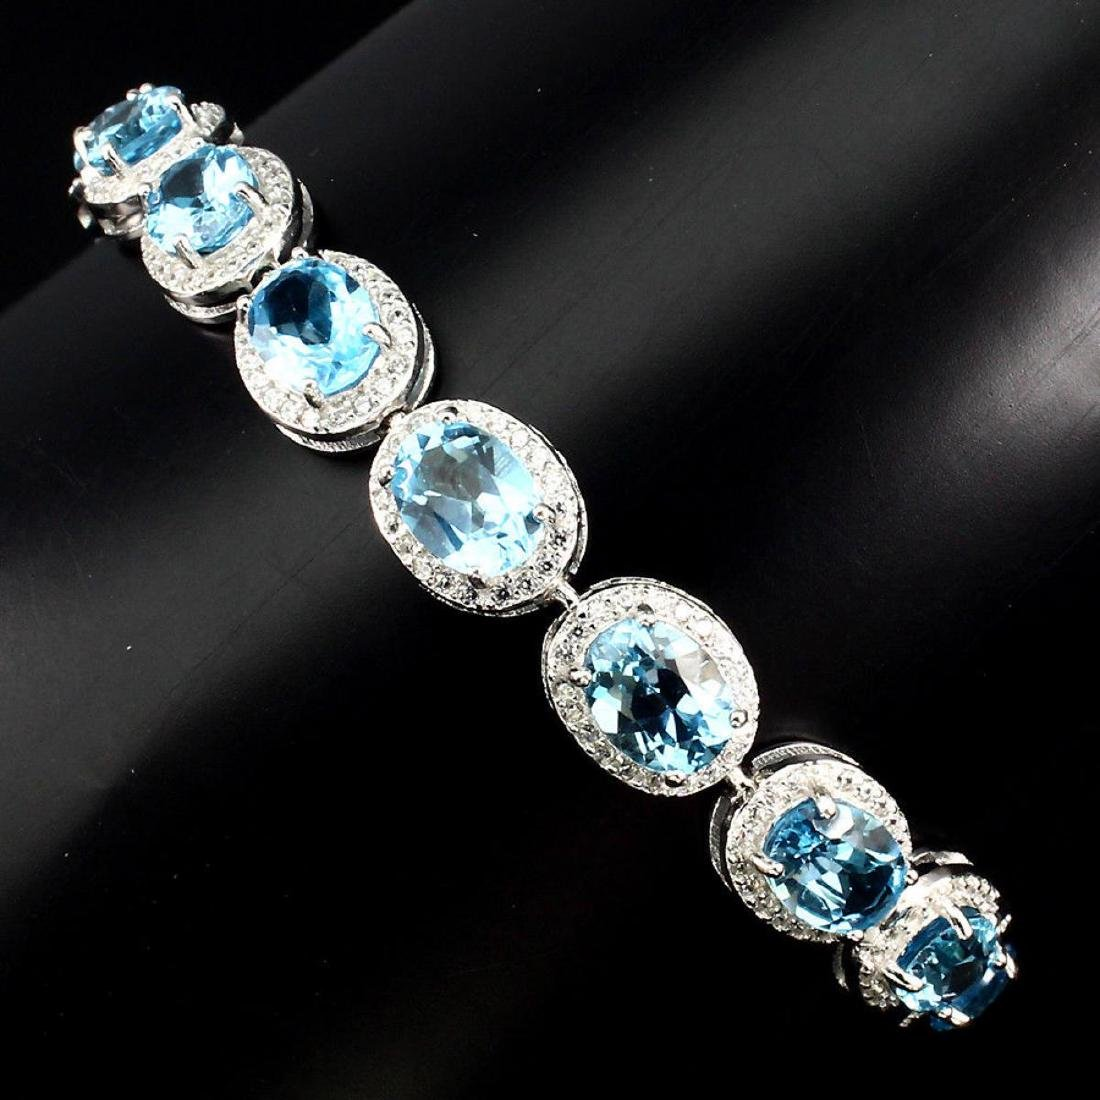 Natural Oval 8x6mm Swiss Blue Topaz Bracelet - 2